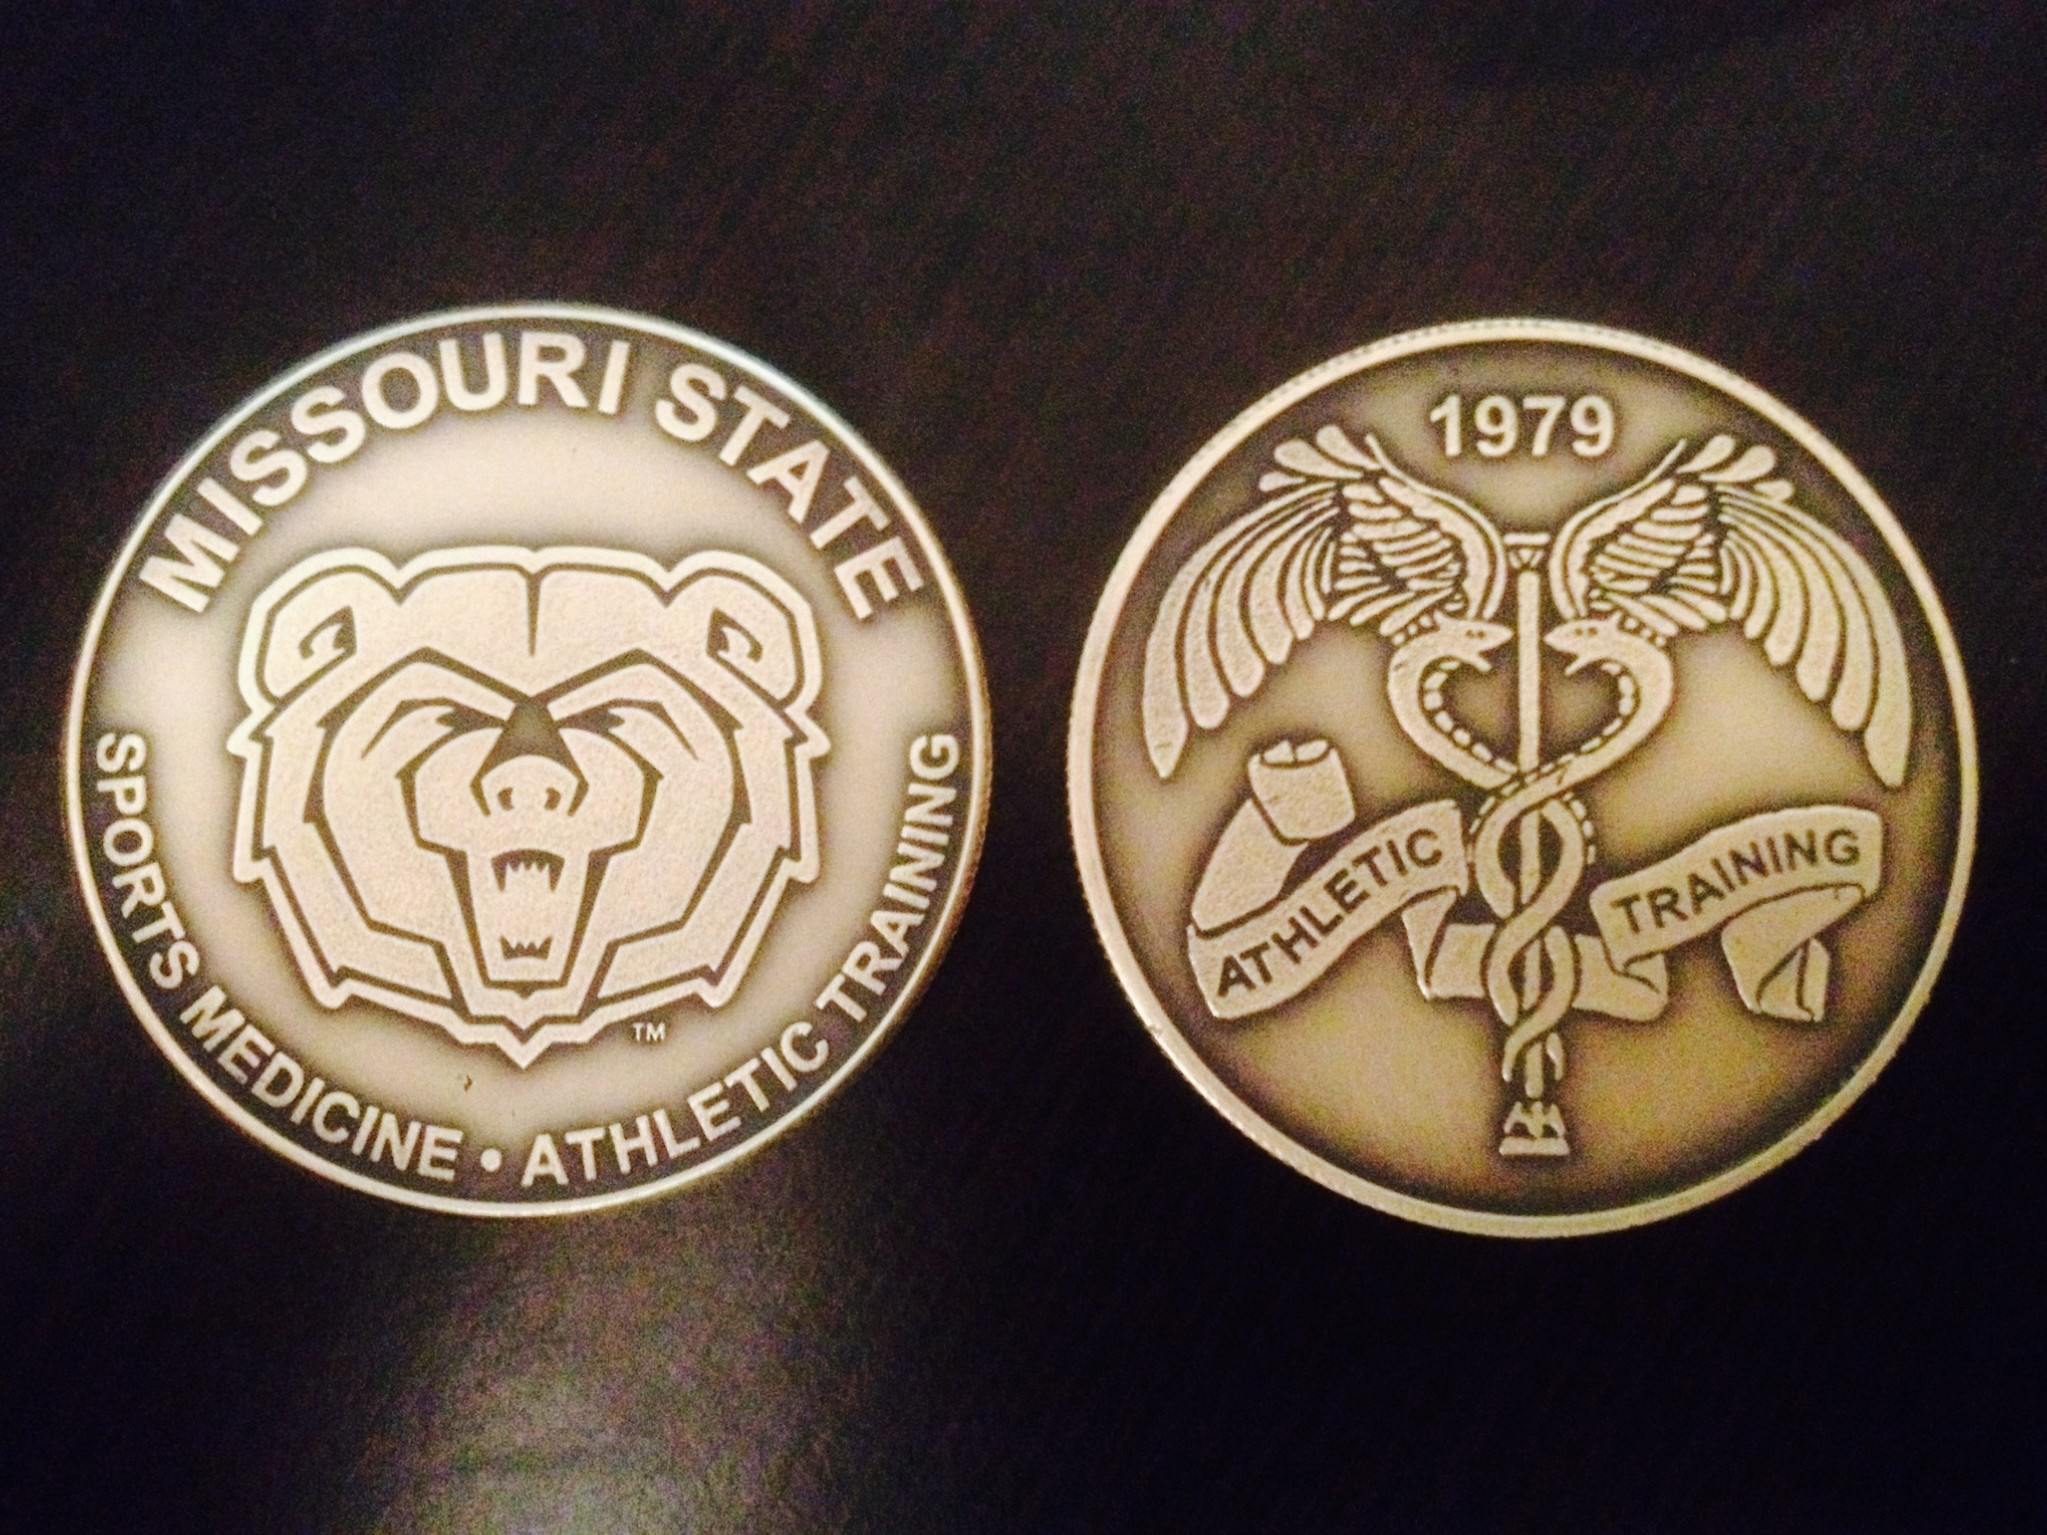 New Tradition for Athletic Training Alumni at MSU